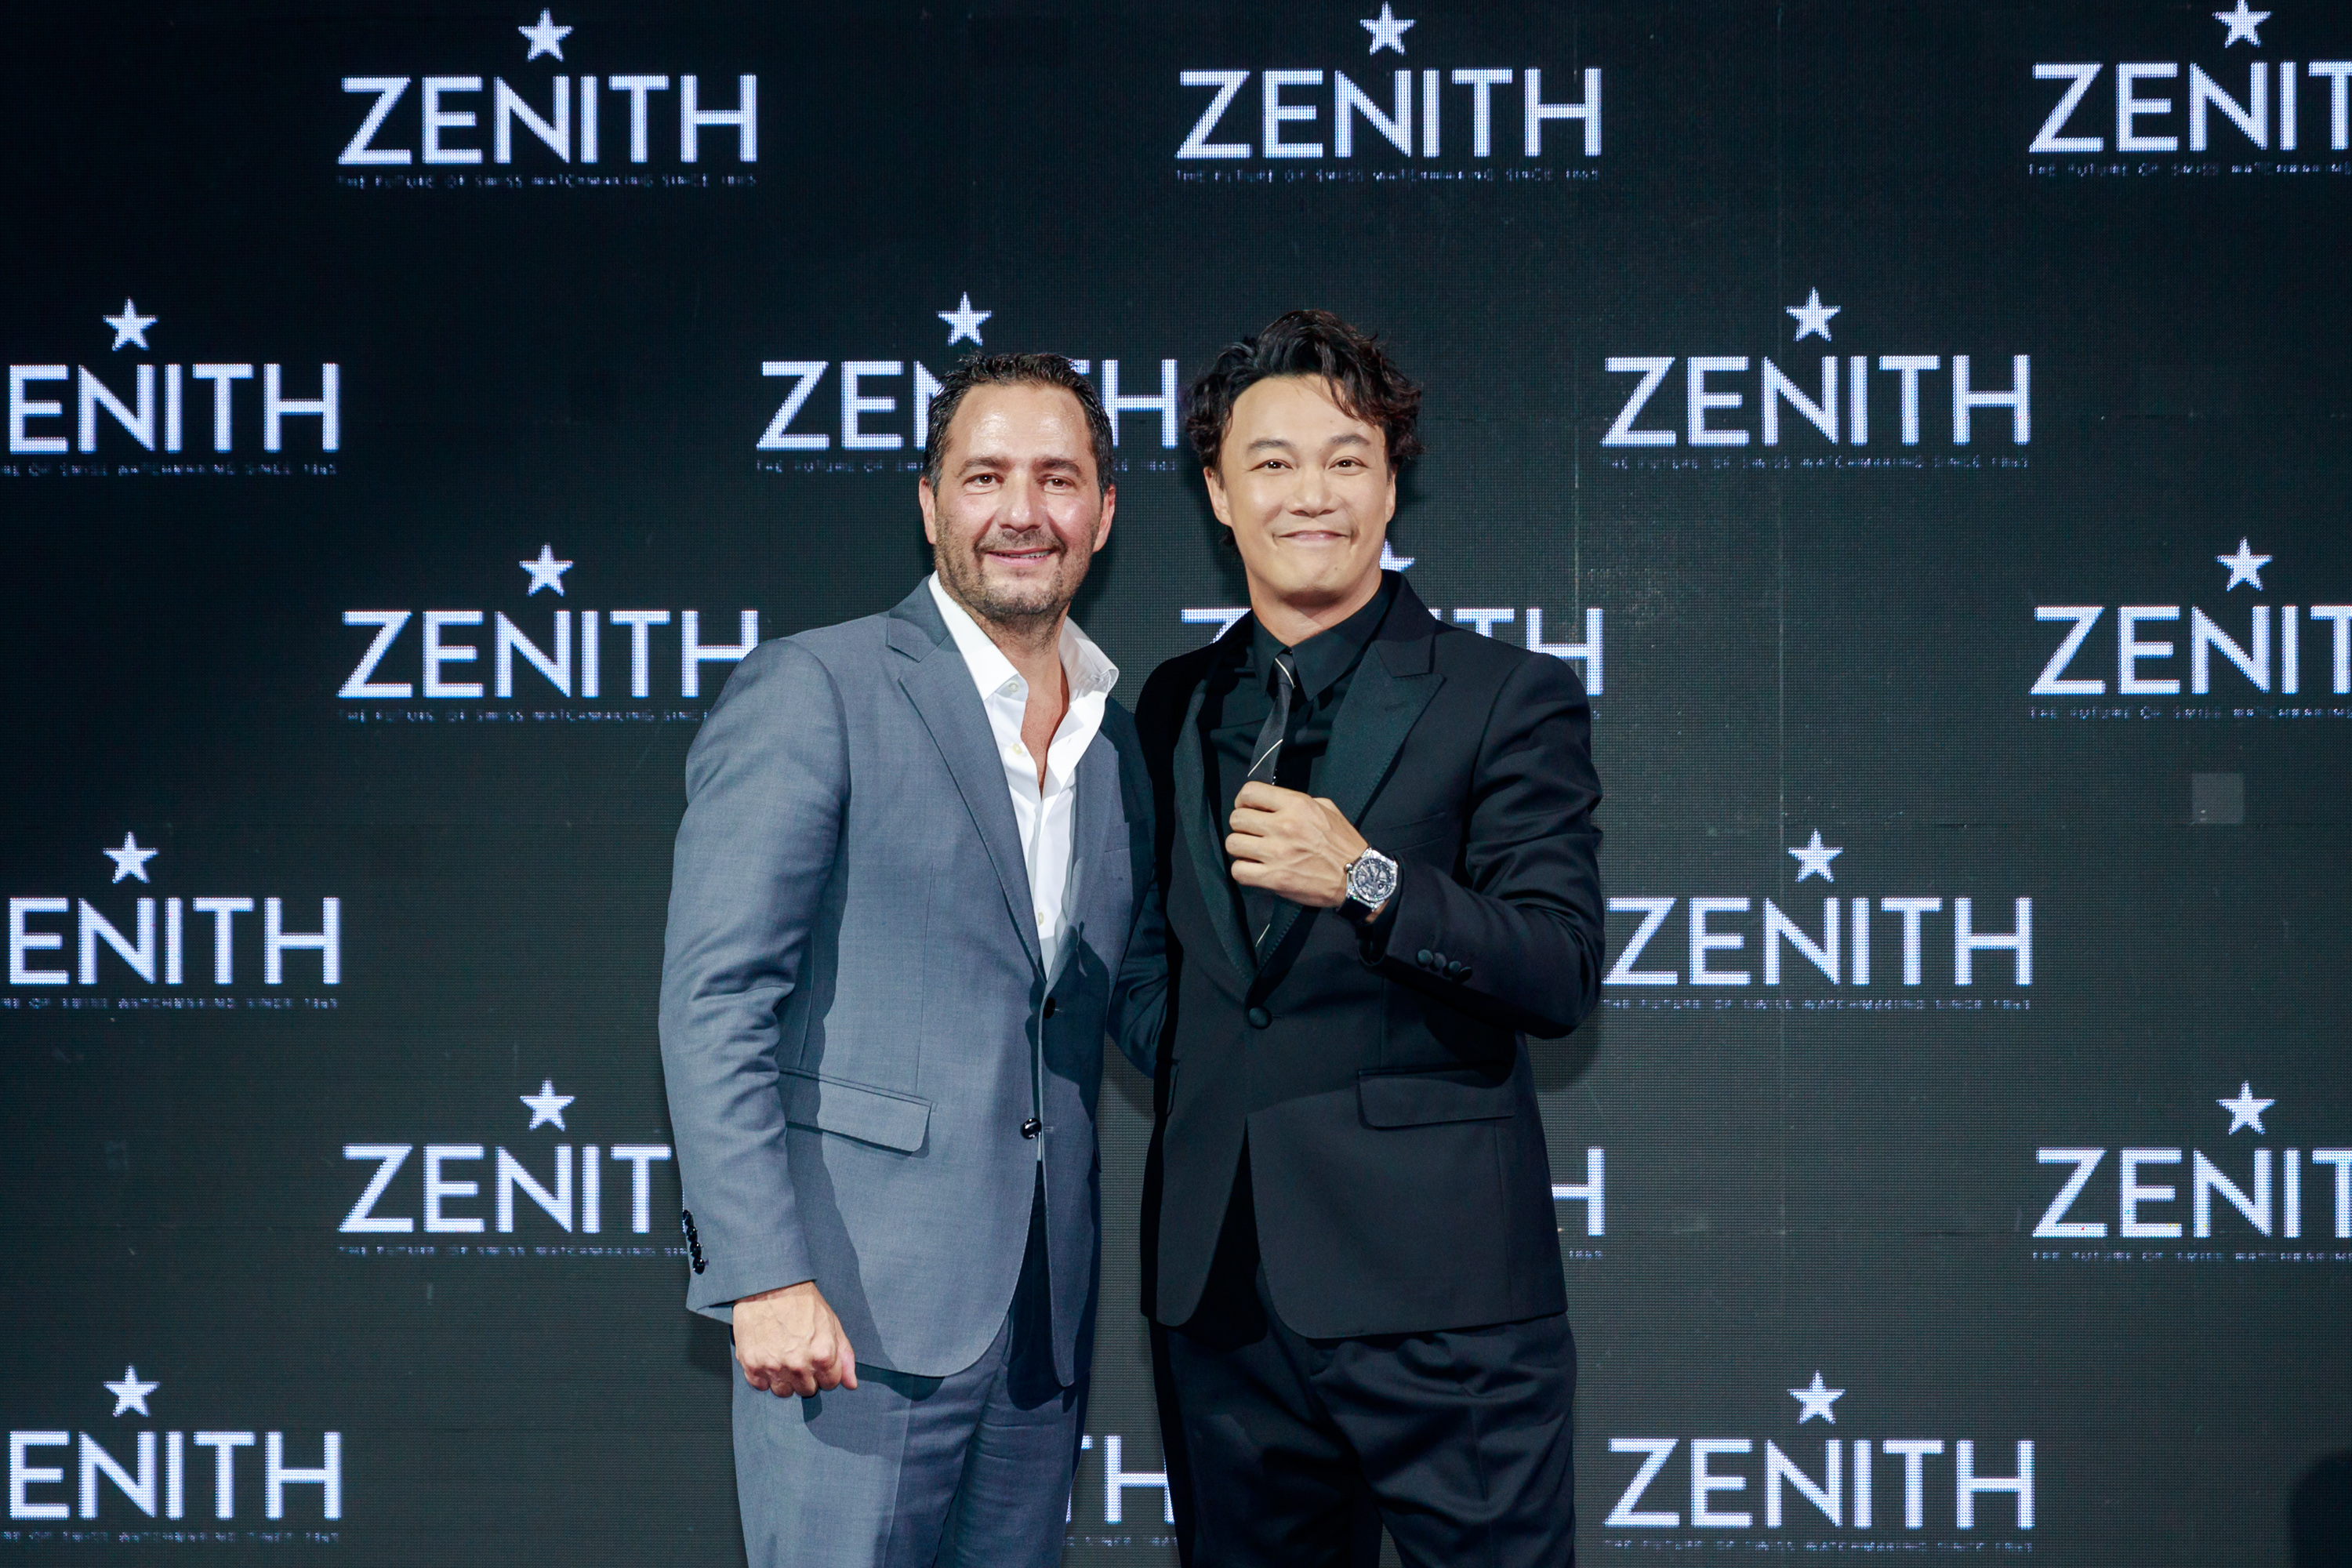 ZENITH_Defy Inventor Greater China (6)